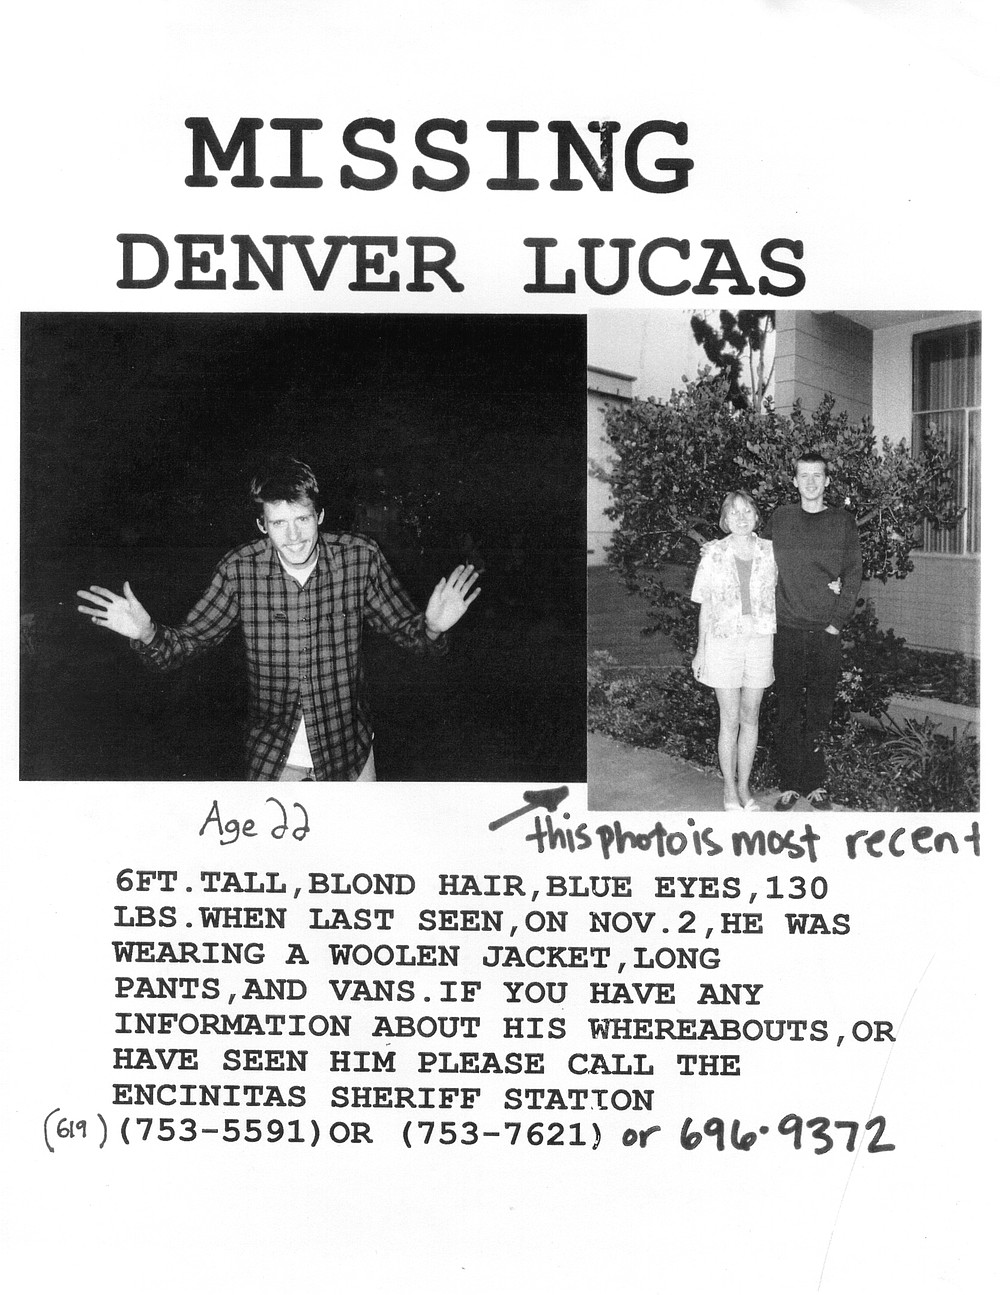 "Denver Lucas ""missing"" flyer"